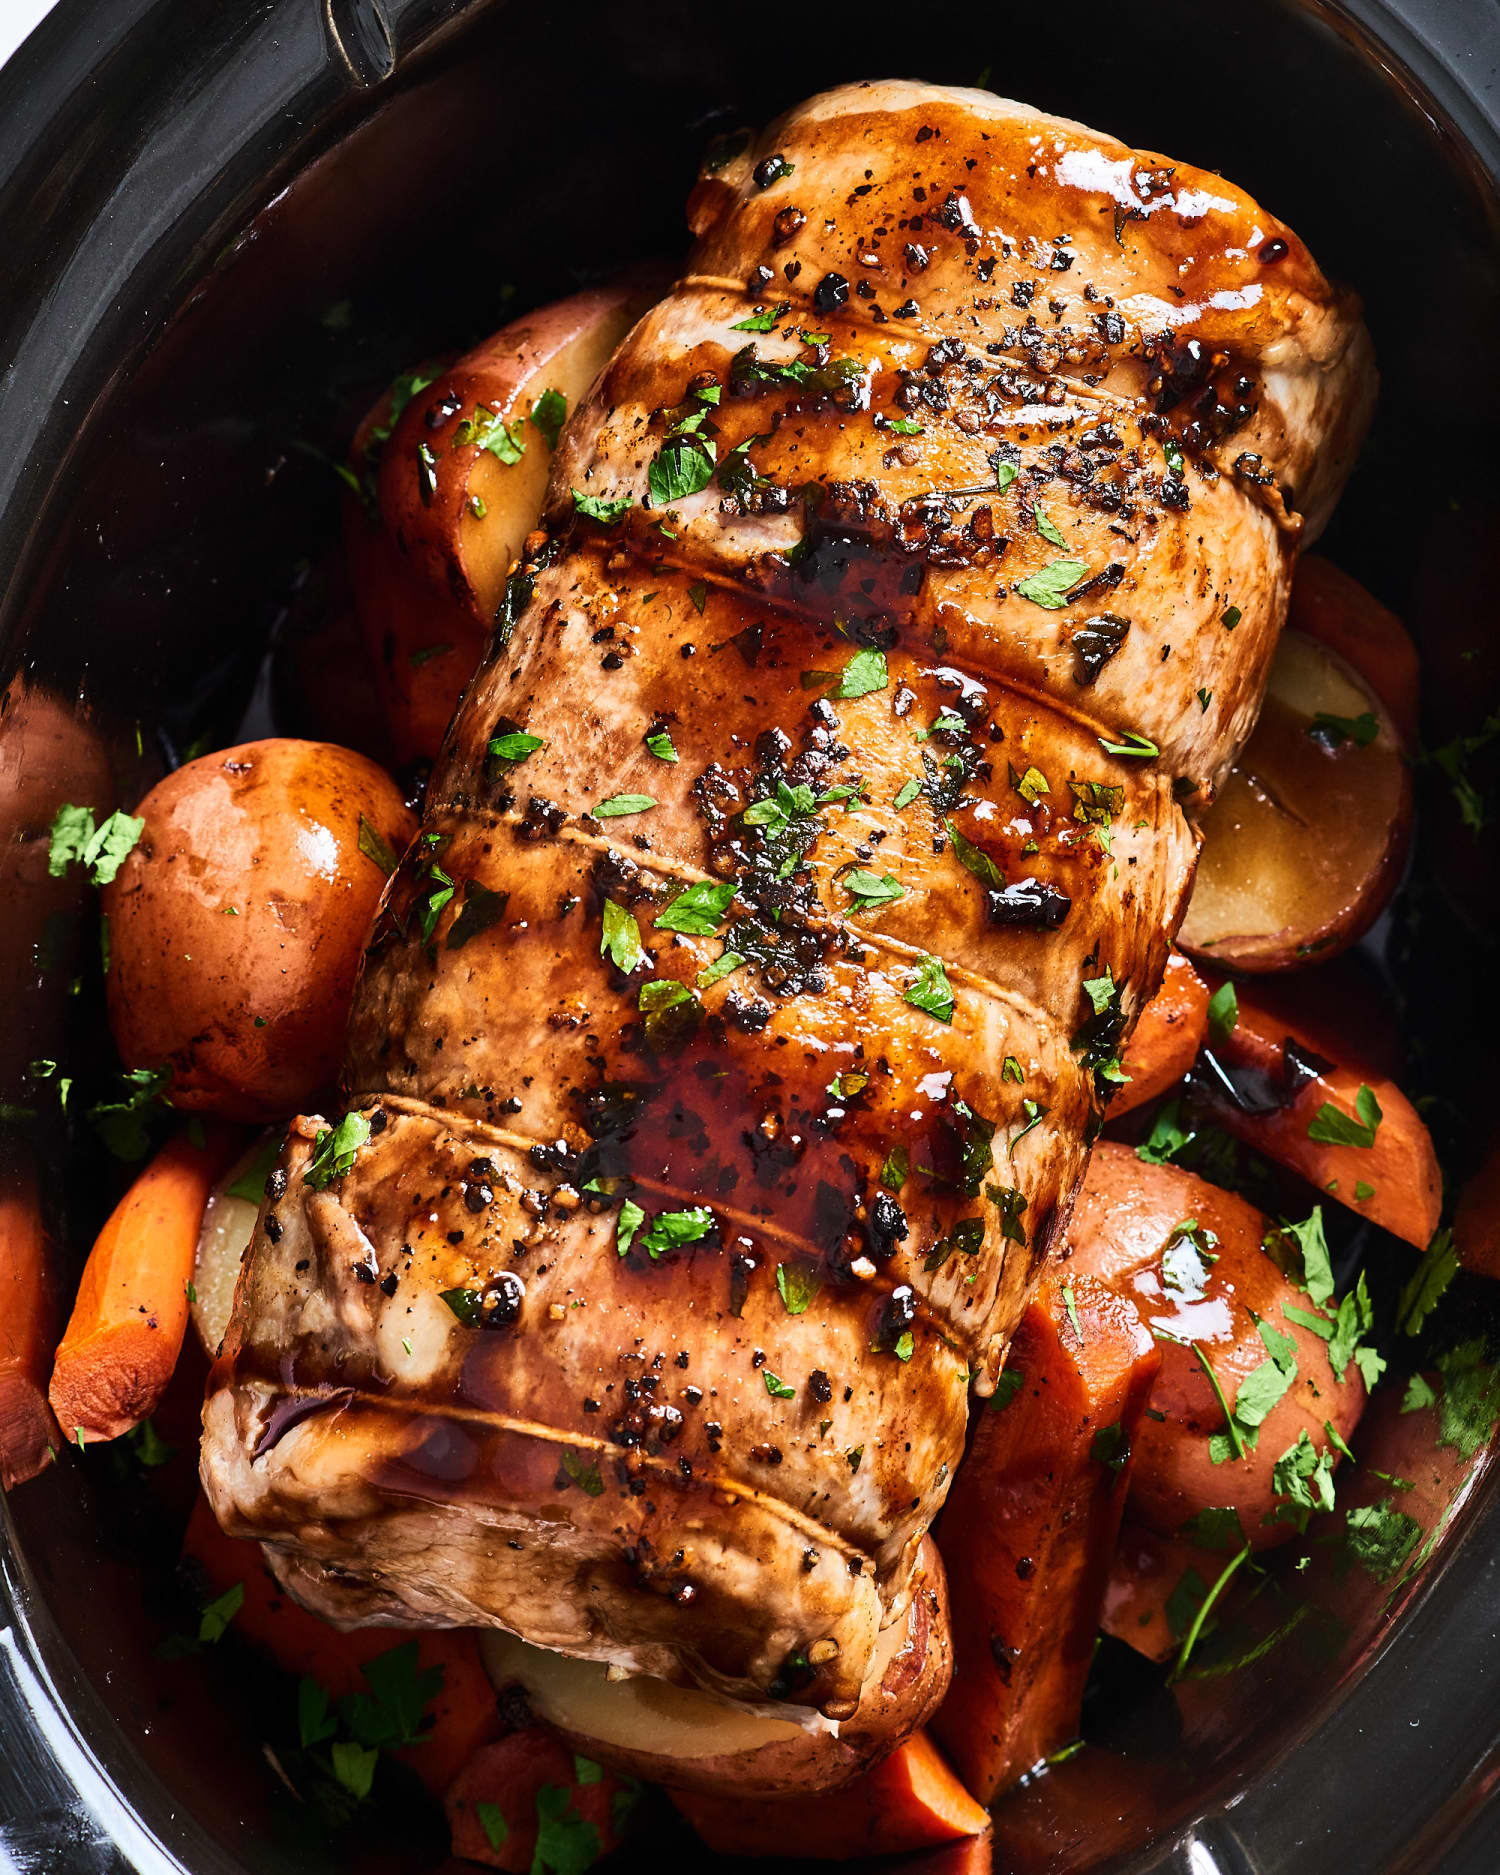 Recipe: Slow Cooker Pork Loin